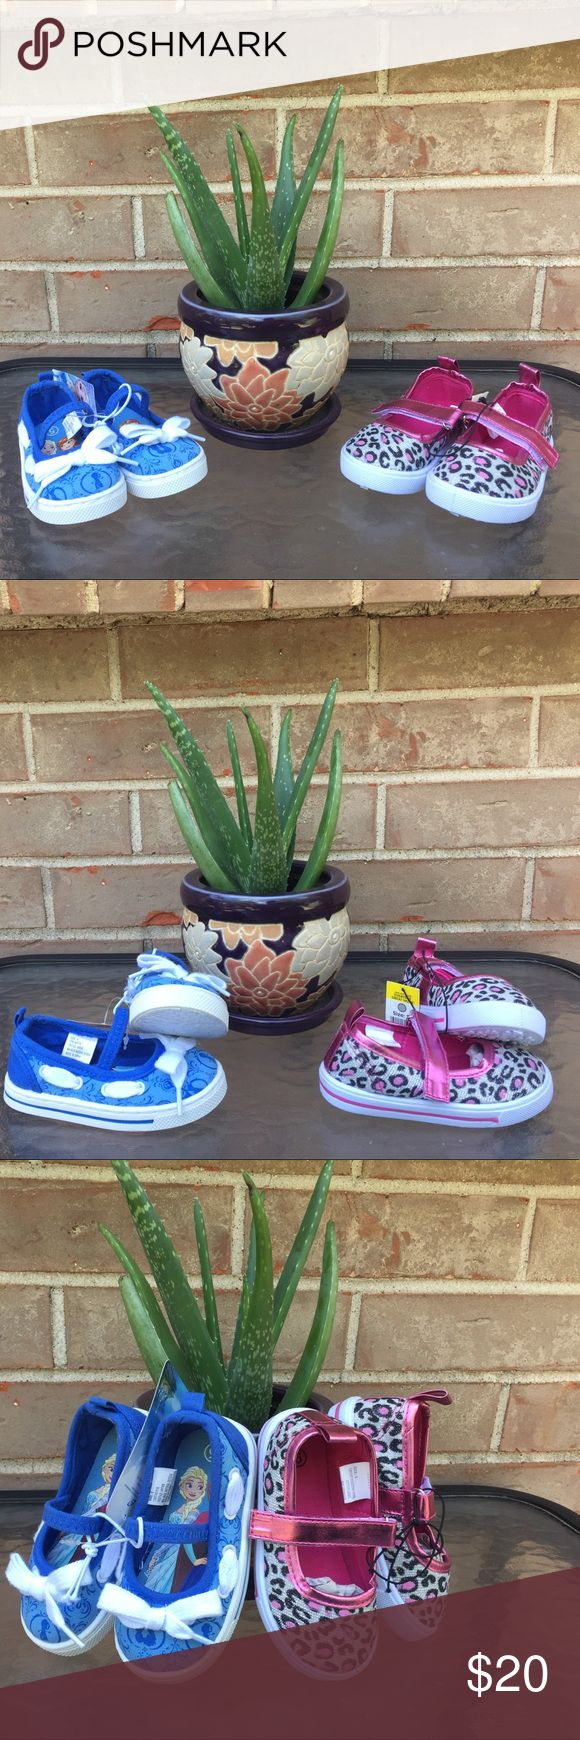 Girls blue frozen/pink cheetah shoes size 5 2 pairs of girls shoes size 5. NWT no defects. Make an offer. Shoes Sneakers